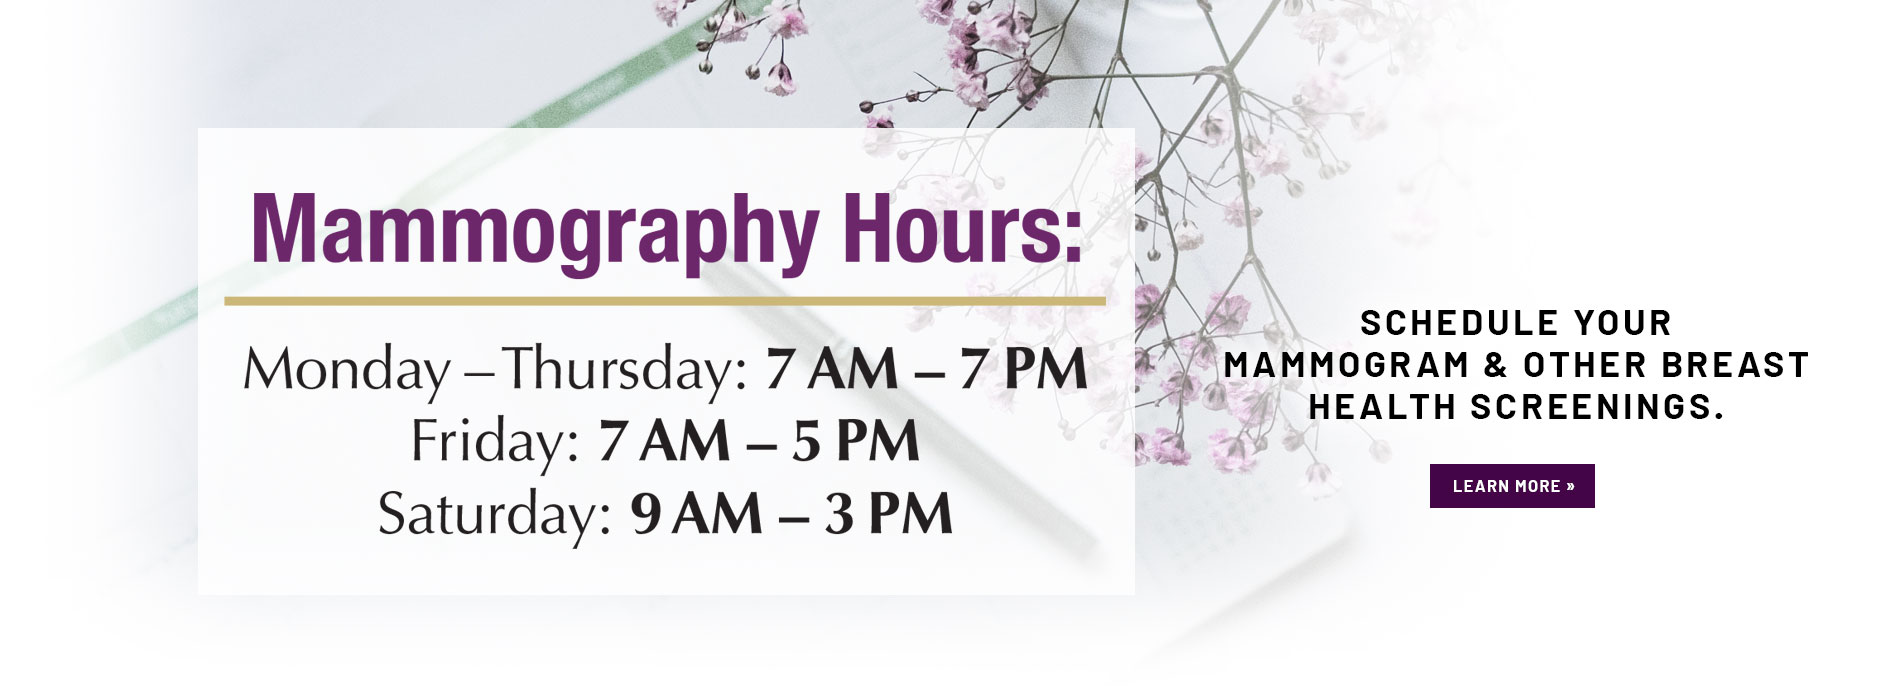 mammography hours